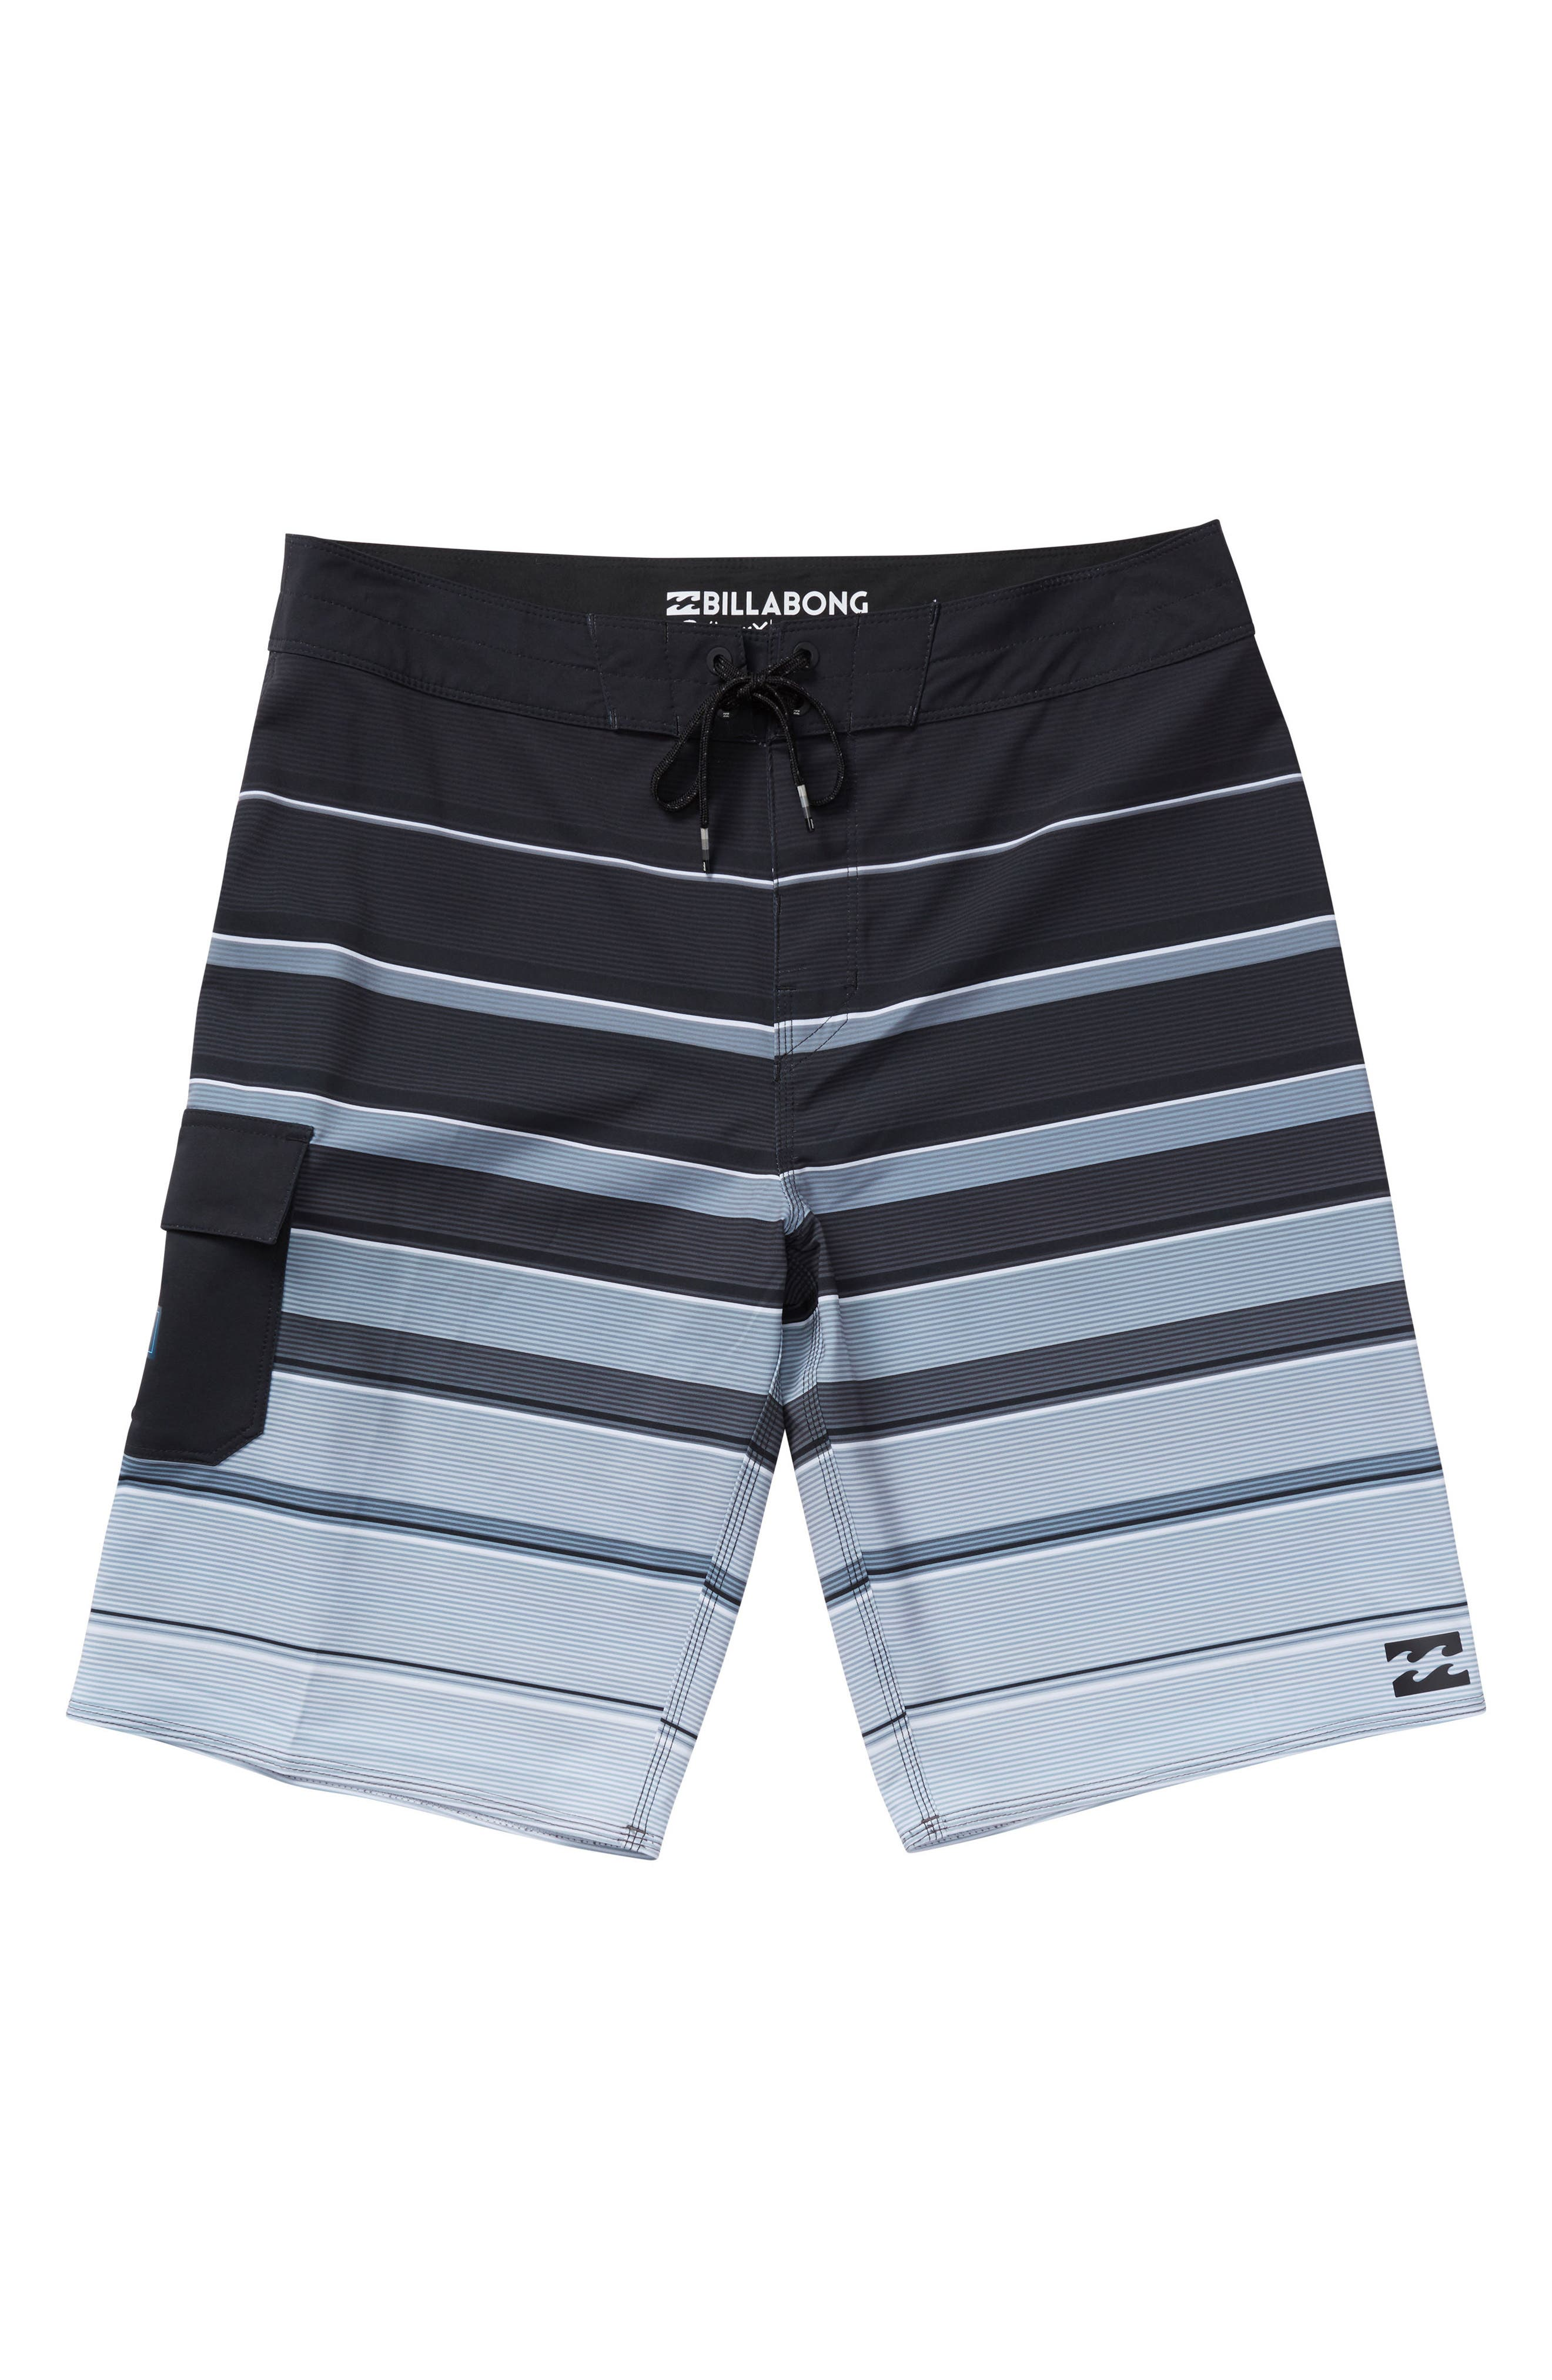 Alternate Image 1 Selected - Billabong All Day X Stripe Board Shorts (Little Boys)